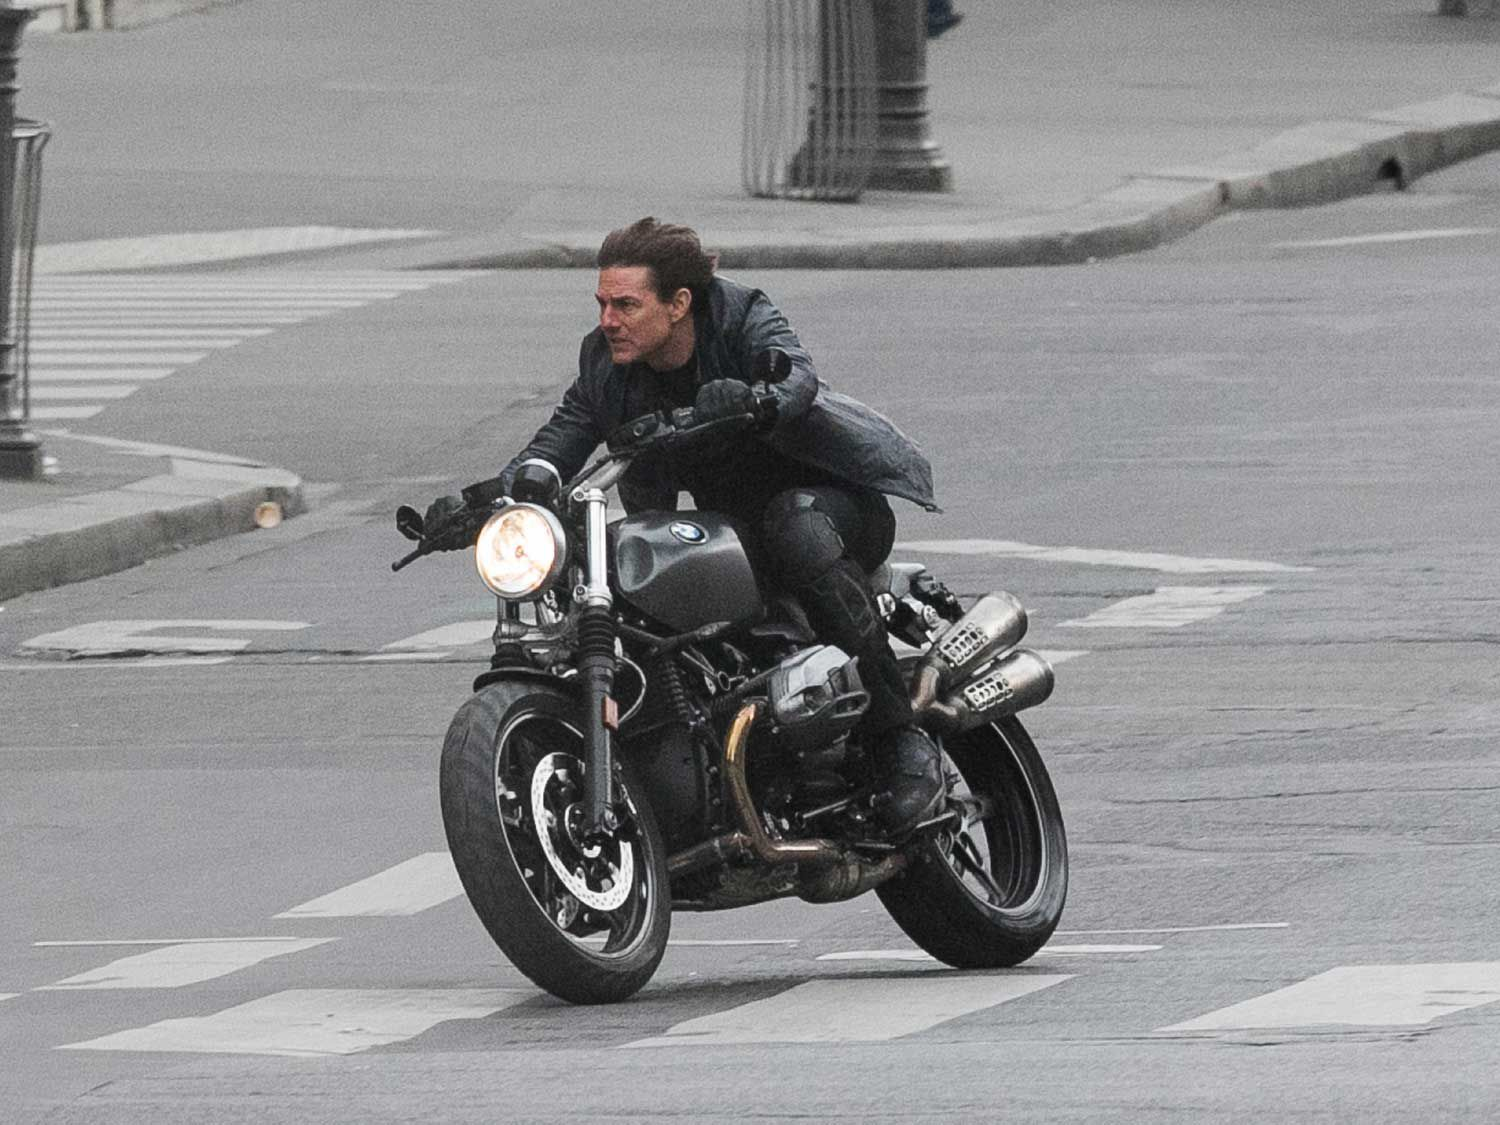 <strong>Actor Tom Cruise:</strong> It is reported that Tom Cruise takes stunting into his own hands and here he is riding on the streets of Paris for the sixth <em>Mission: Impossible</em> movie.